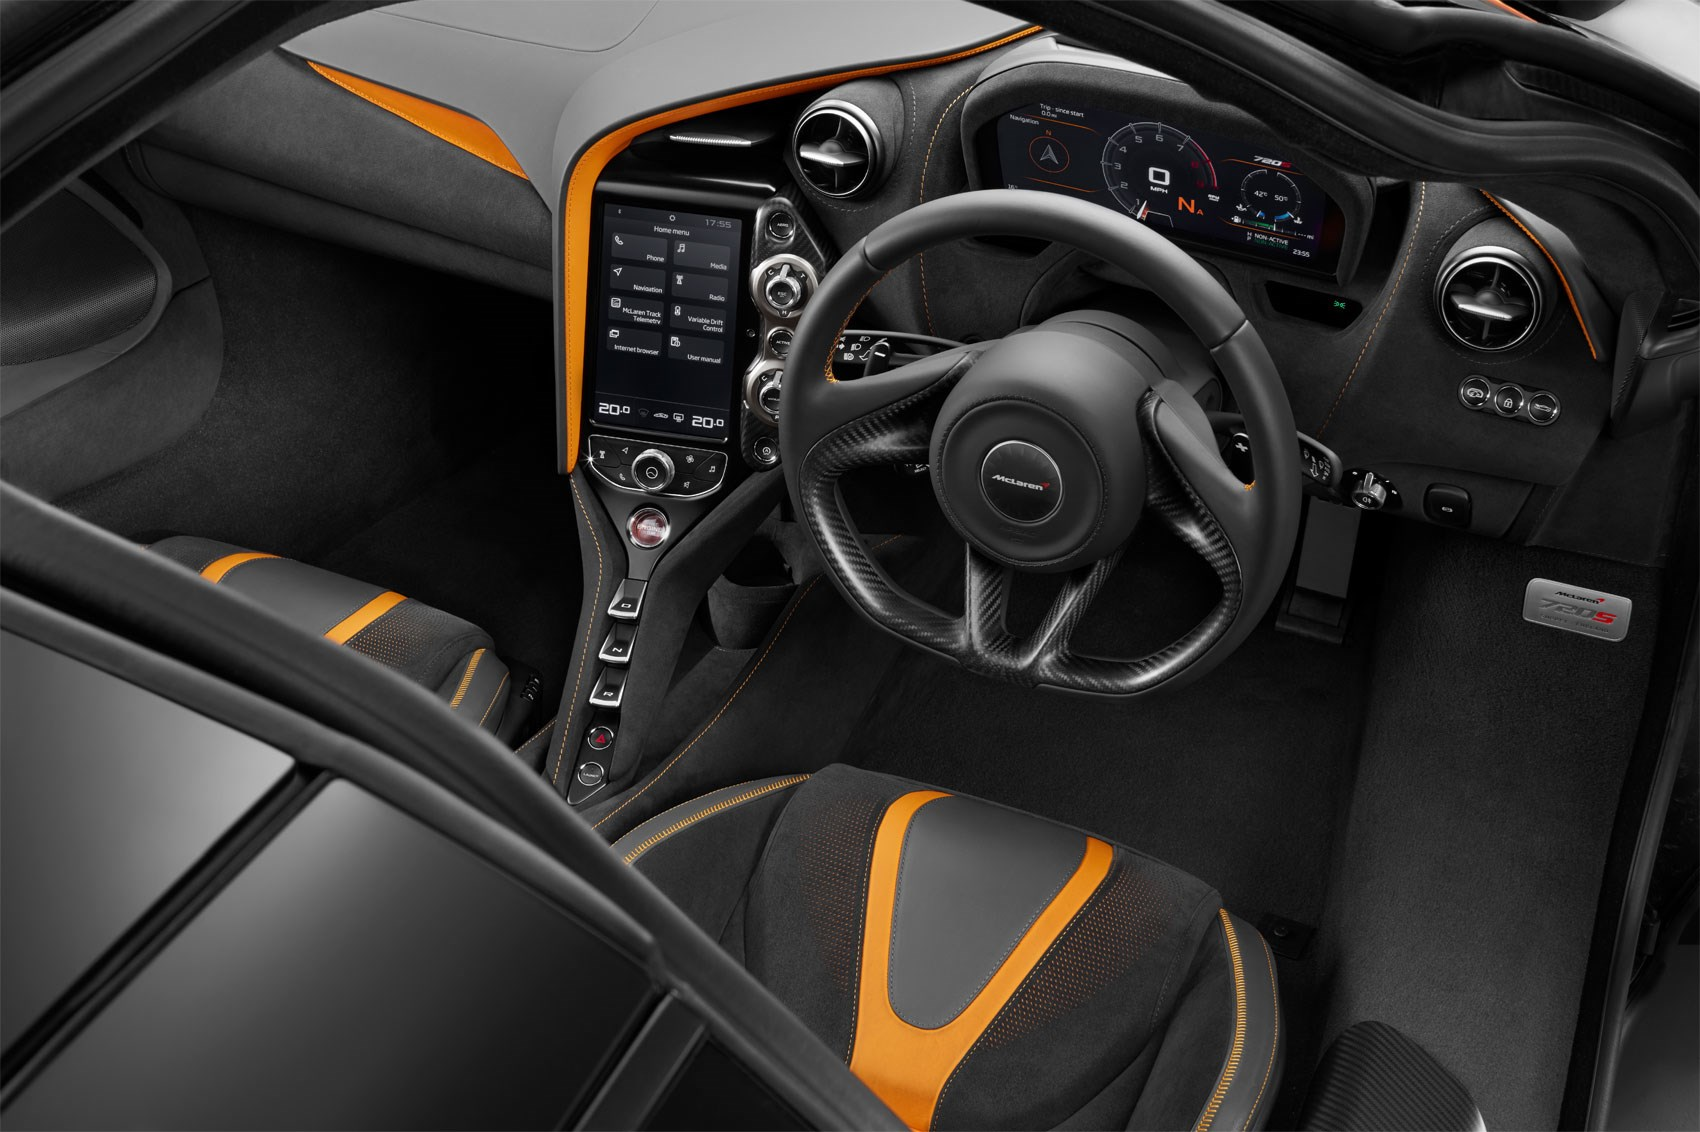 McLaren storms into Geneva with new 720S supercar by CAR ...